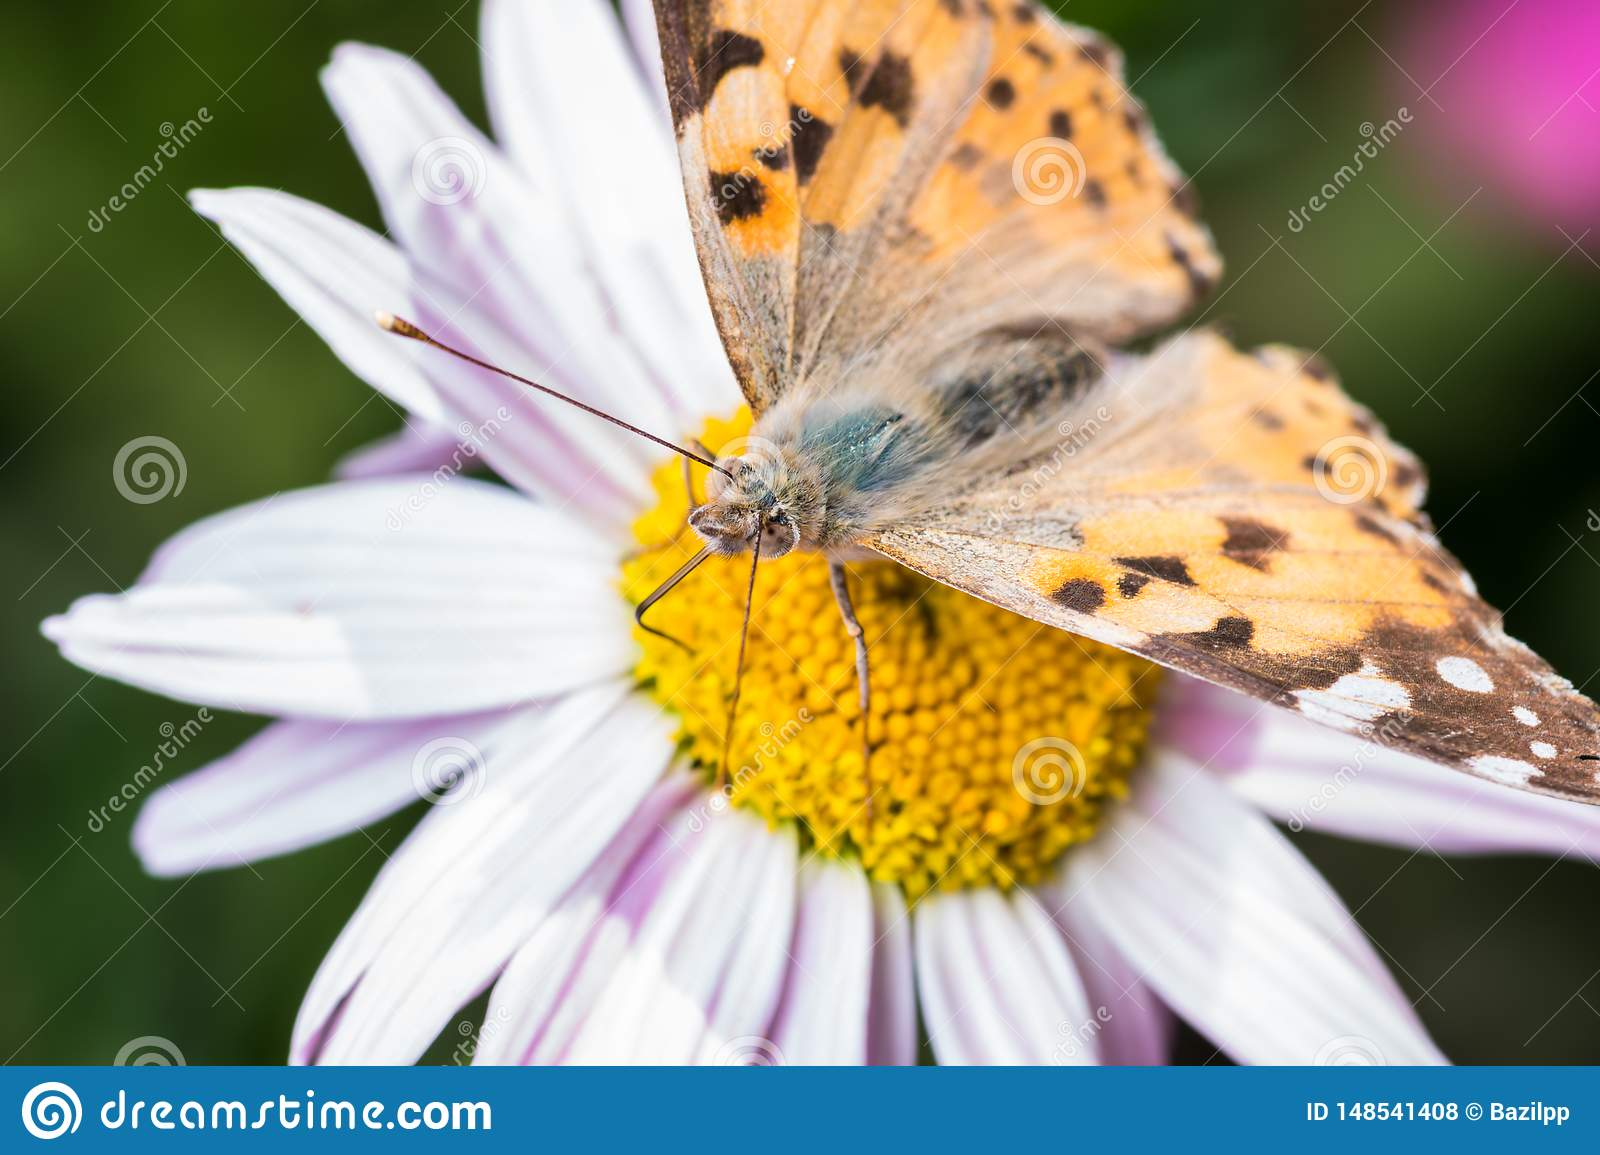 A beautiful orange brown butterfly sits on a flower ith a yellow middle.